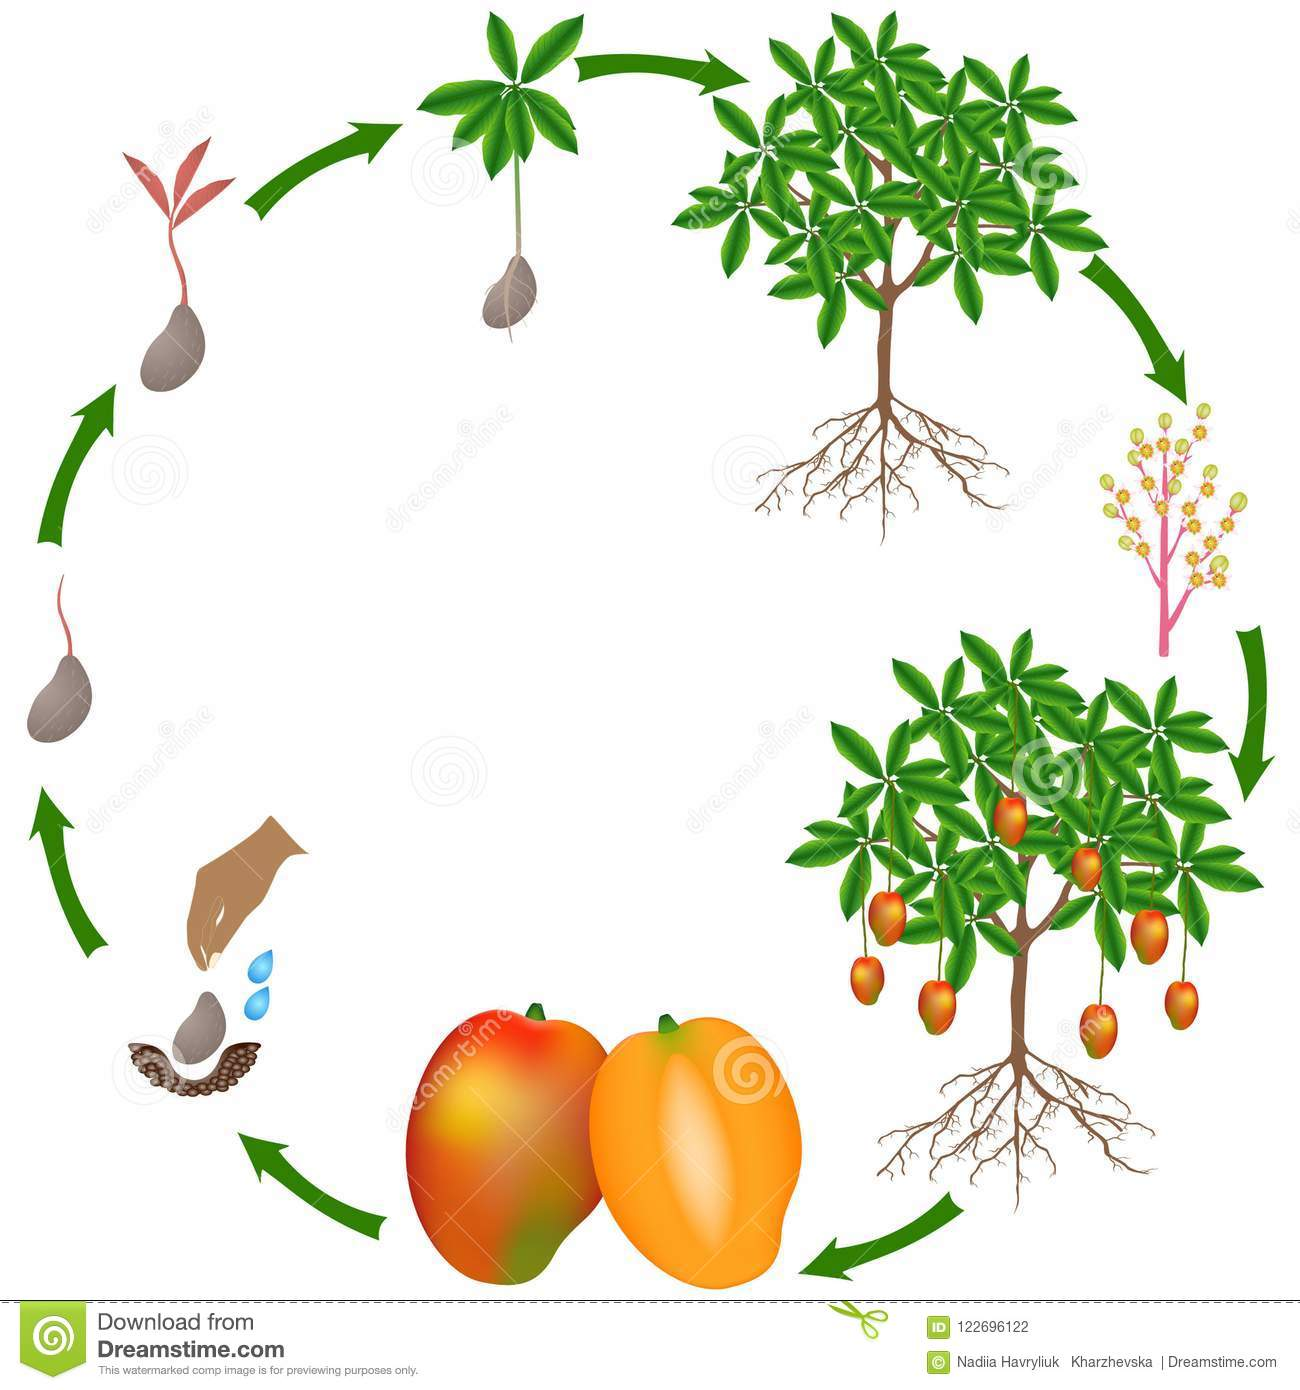 Life Cycle Of A Mango Plant On A White Background  Stock